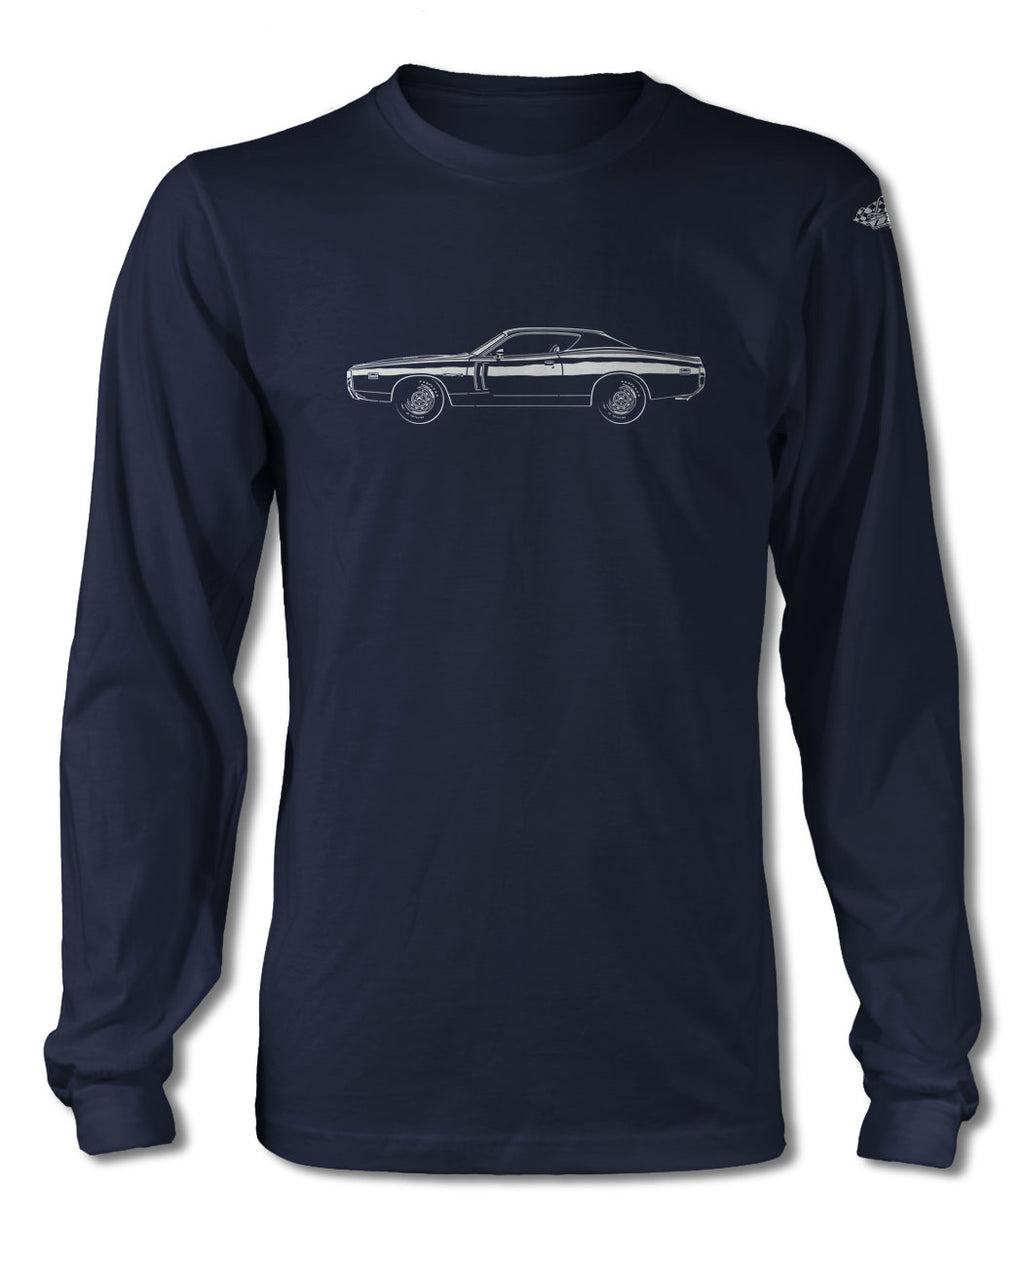 1971 Dodge Charger SE Hardtop T-Shirt - Long Sleeves - Side View